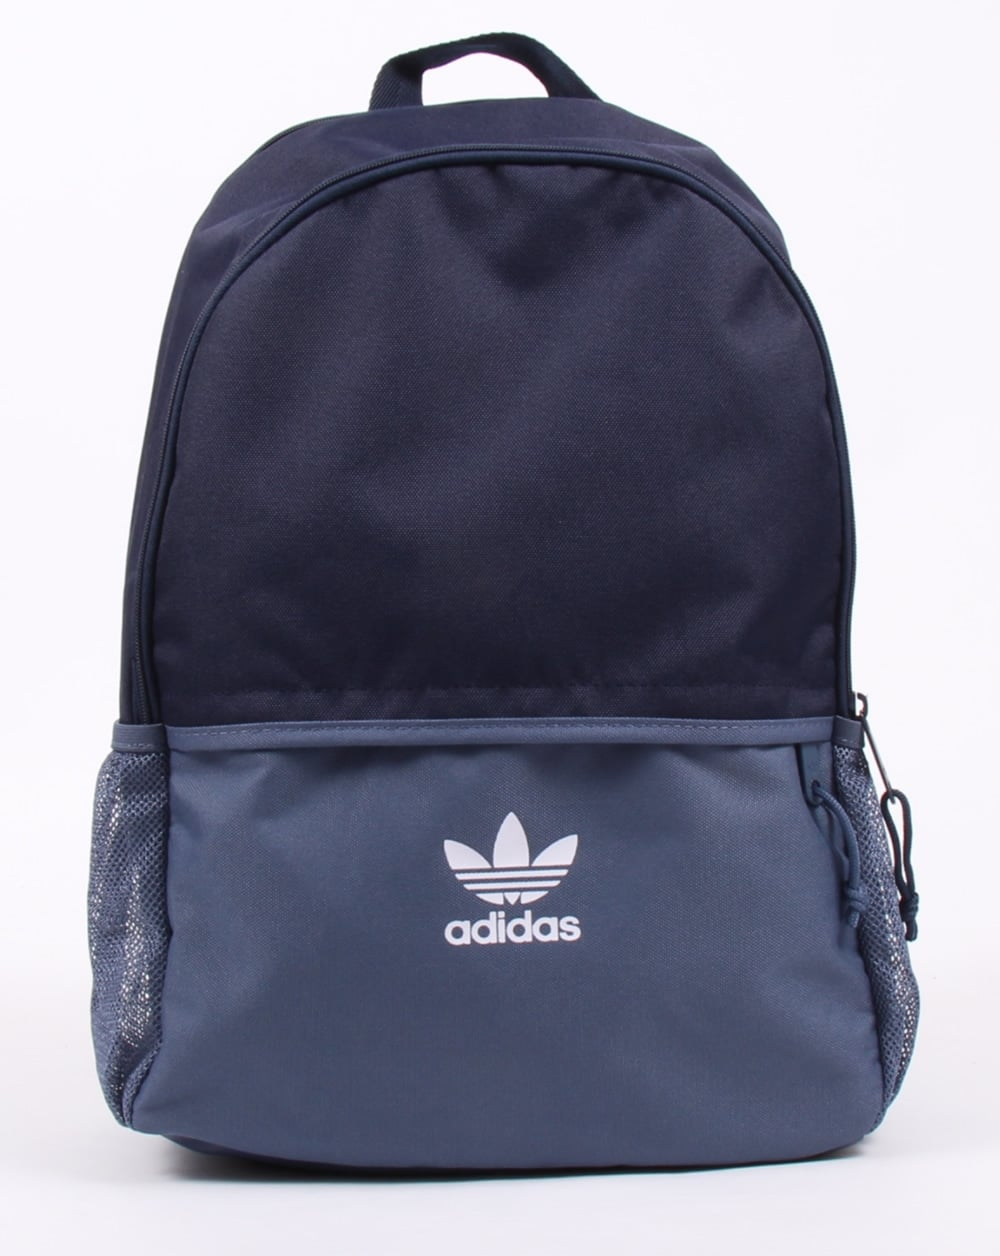 adidas originals essentials backpack navy bag. Black Bedroom Furniture Sets. Home Design Ideas